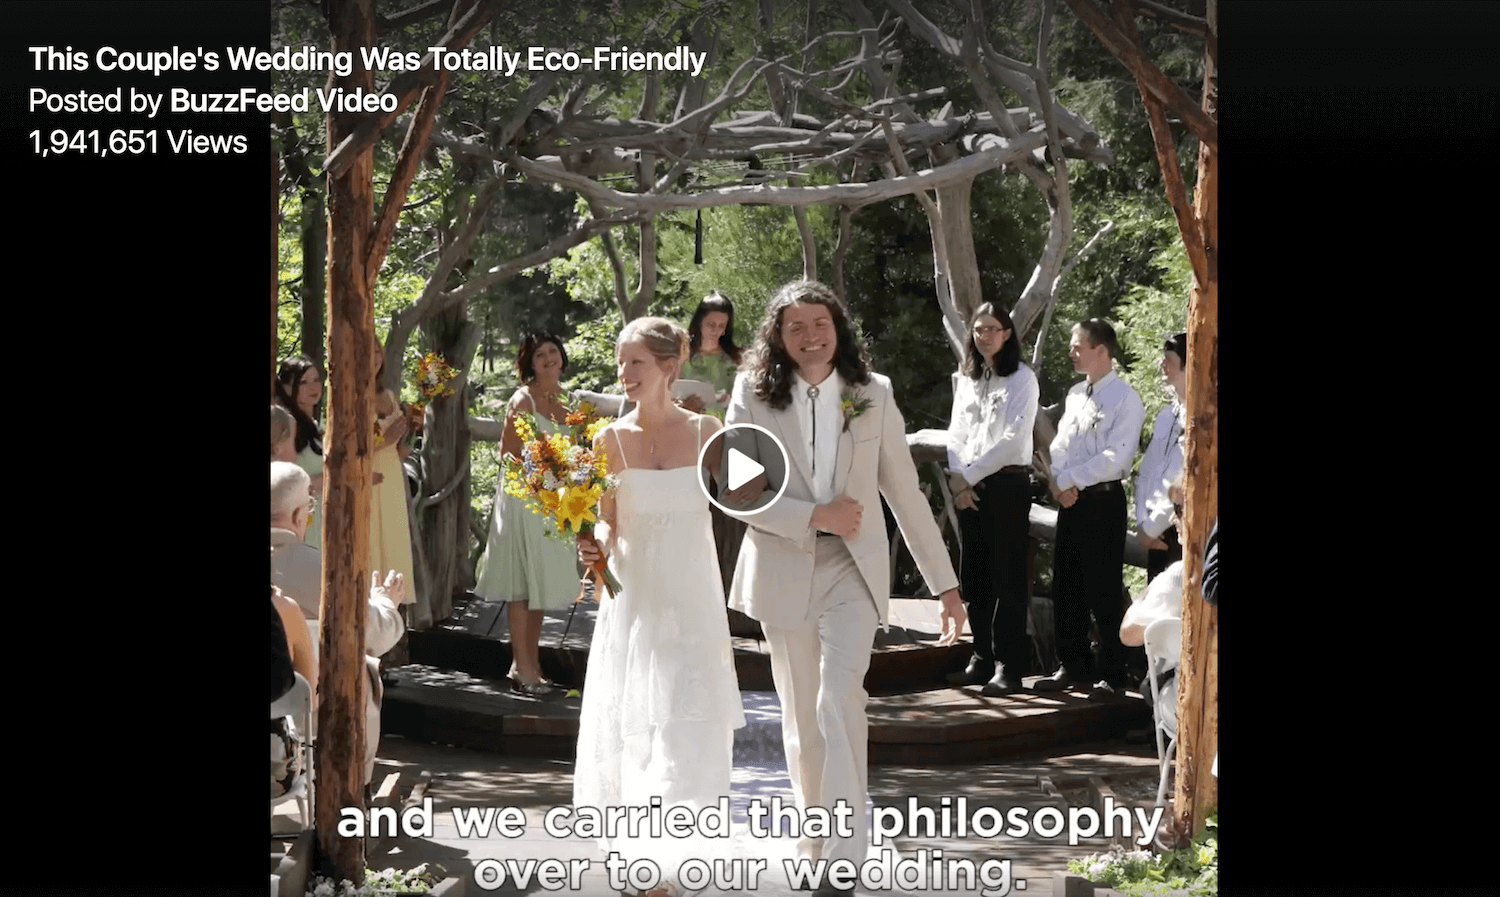 Zero Waste Wedding in LA